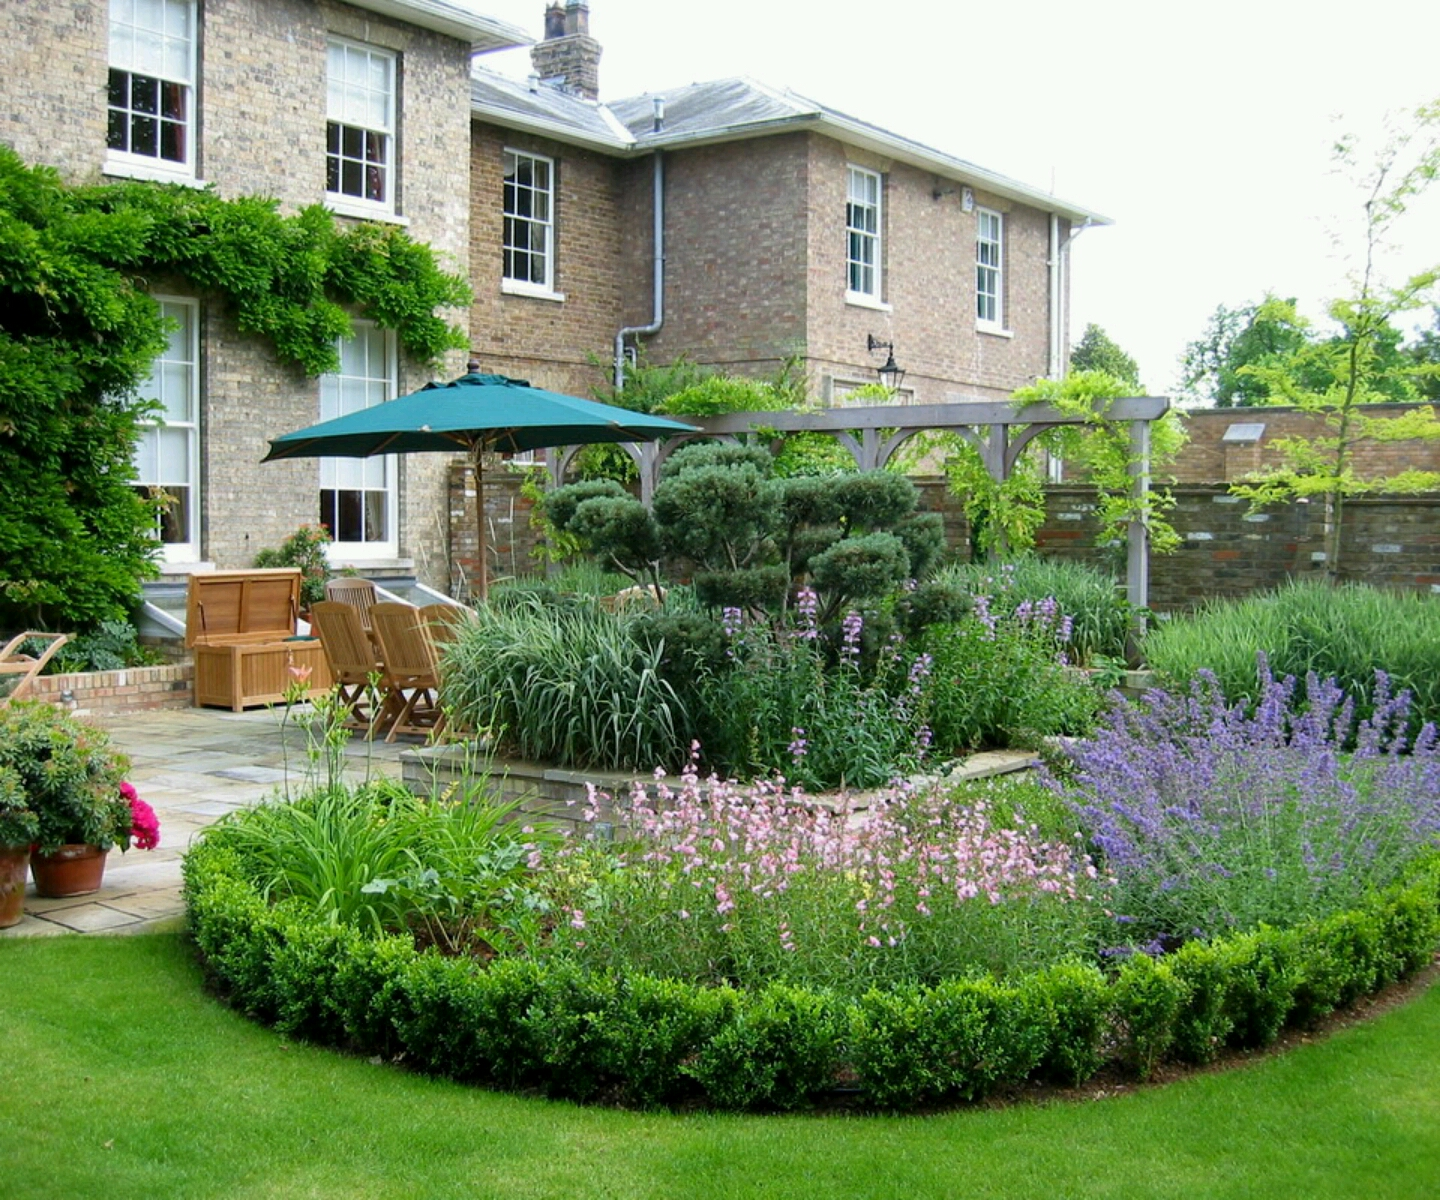 House Garden Design Ideas Of New Home Designs Latest December 2012